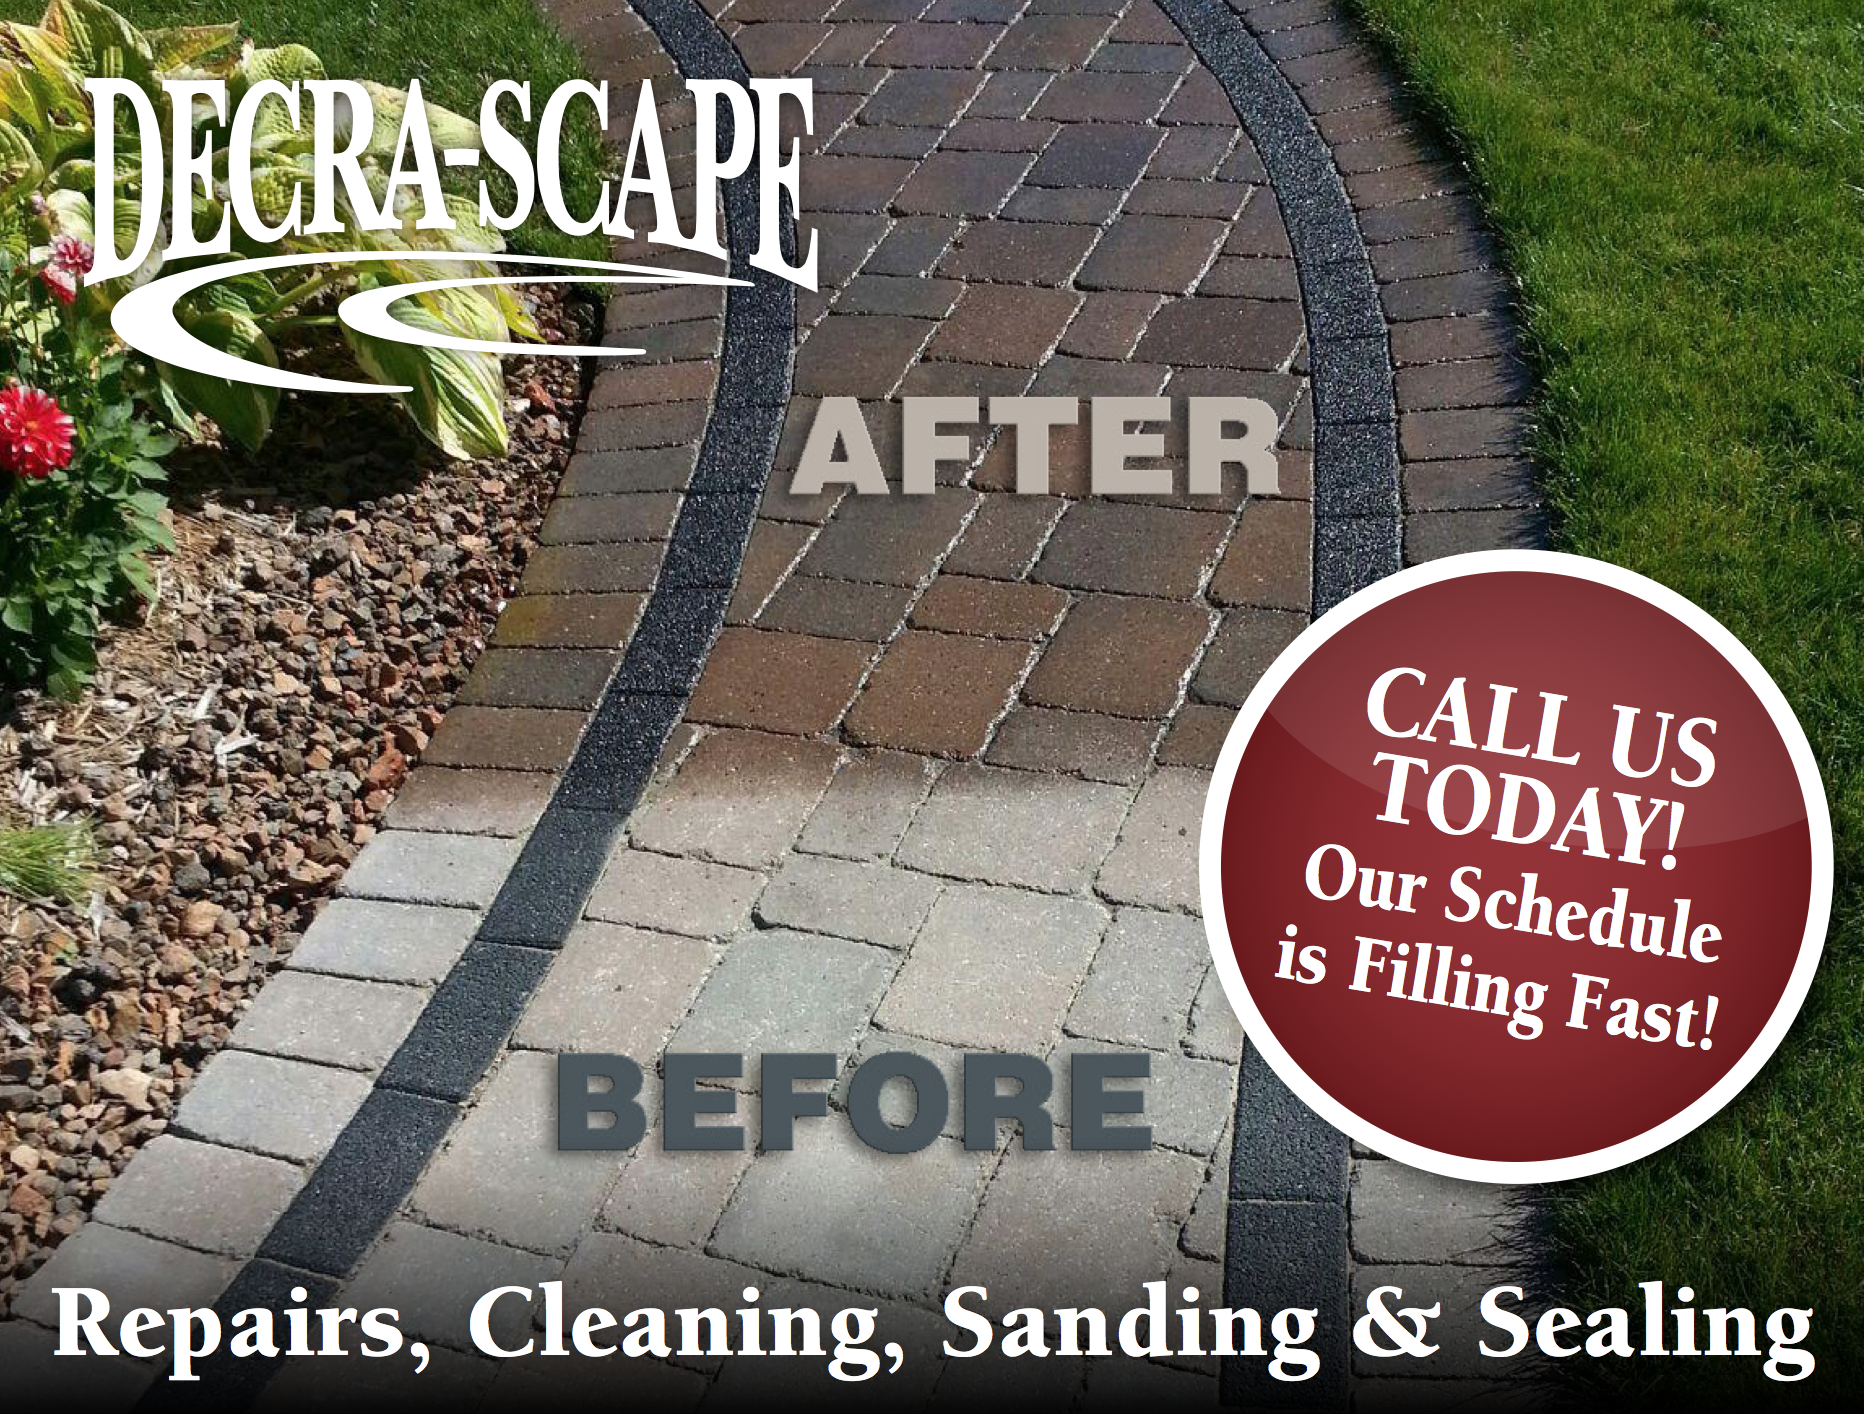 Top masonry contractor out of landscaping companies in Rochester Hills MI